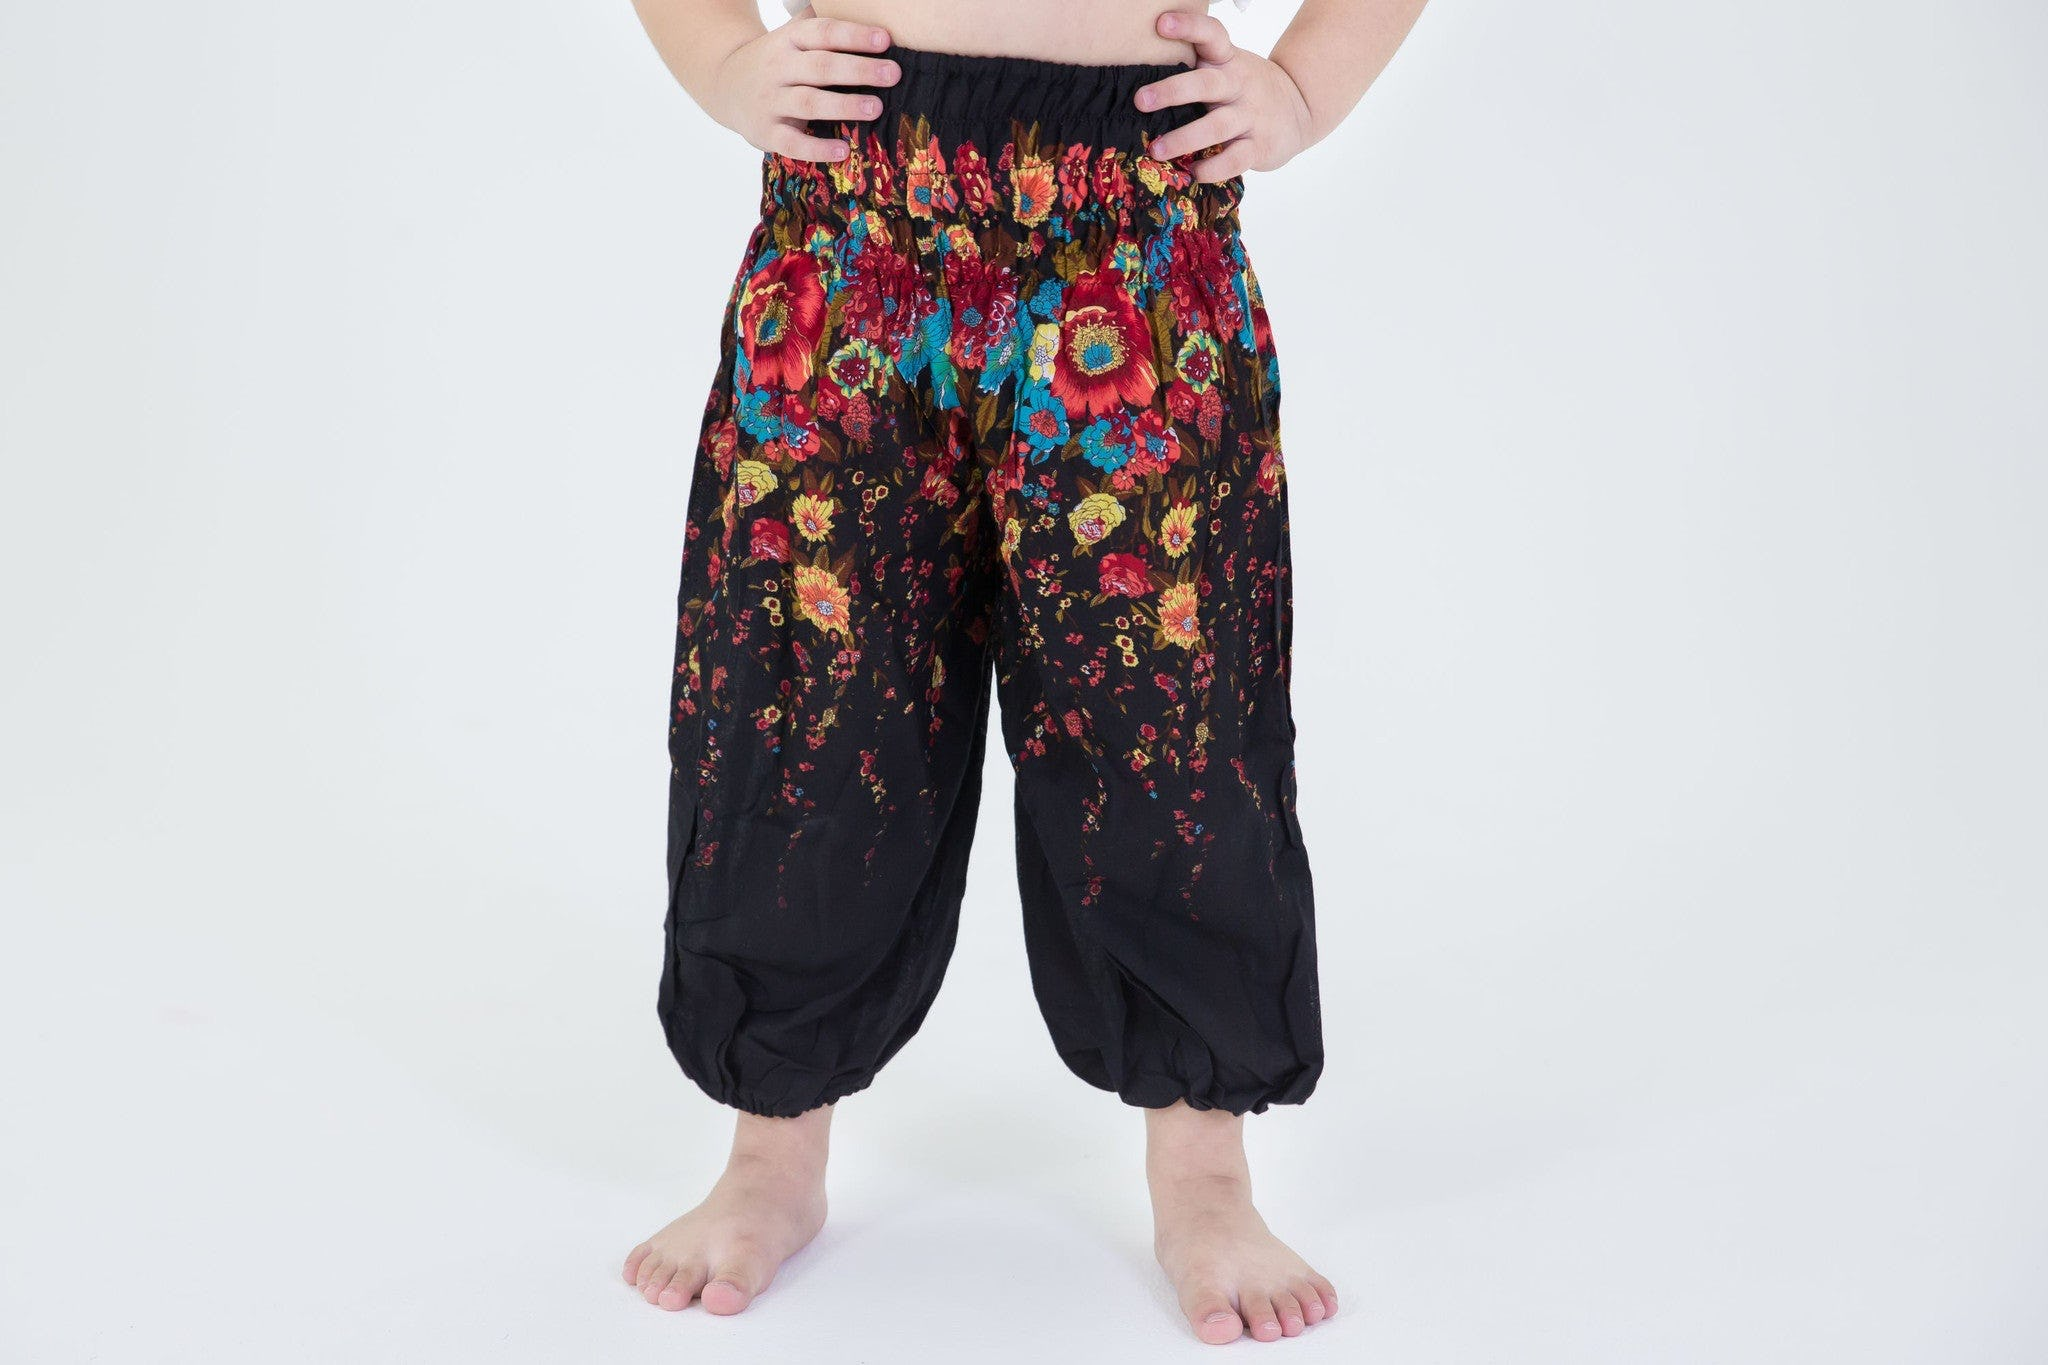 Find great deals on eBay for kids genie pants. Shop with confidence.